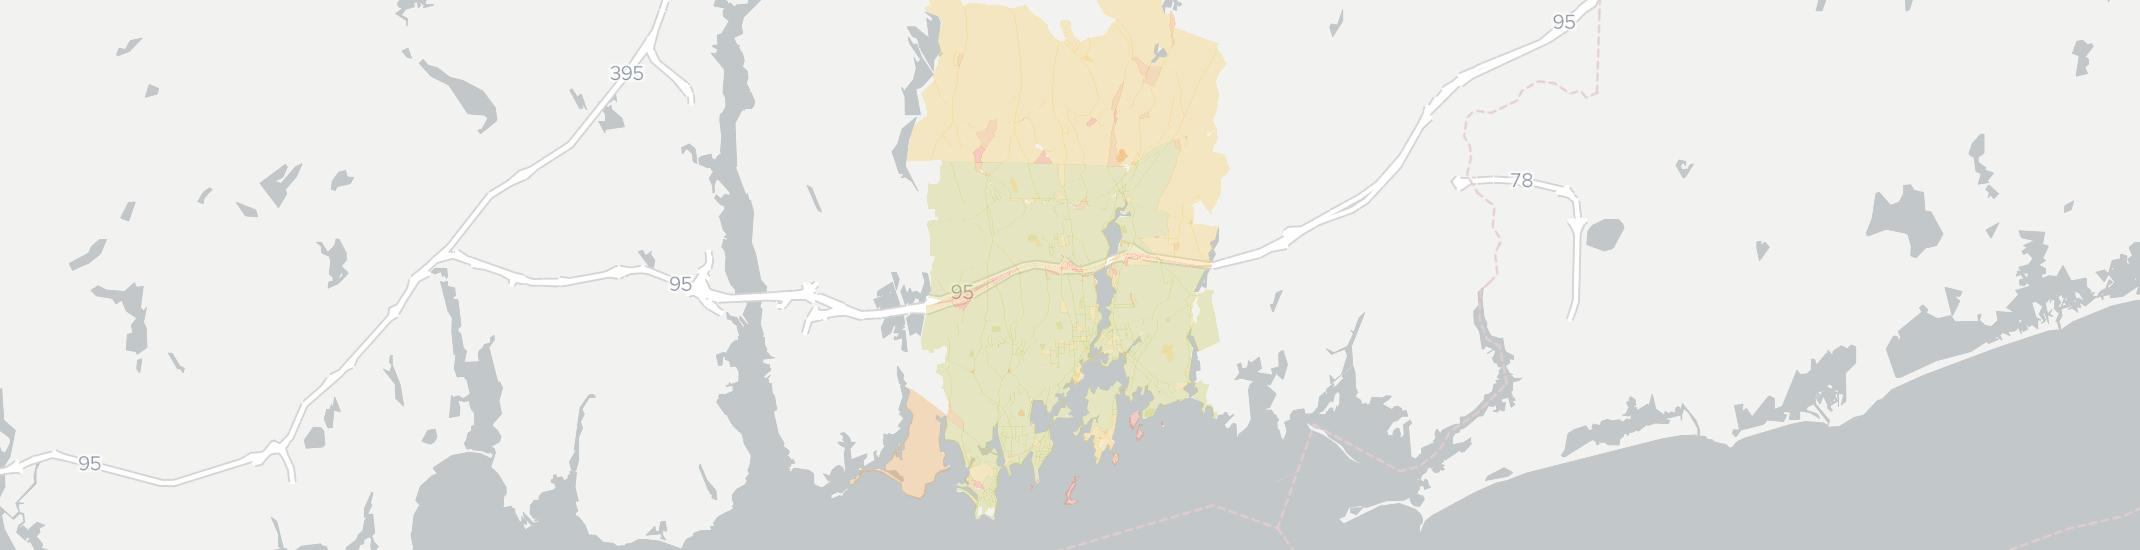 The 5 Best Internet Providers in Mystic in Nov, 2019 Include Map Of Mystic Connecticut on map of canaan connecticut, map of thames river connecticut, map of connecticut towns, map of moosup connecticut, map of suffield connecticut, map of new london connecticut, map of stafford springs connecticut, map of wethersfield connecticut, map of cos cob connecticut, map of bethlehem connecticut, map of montville connecticut, map of southbury connecticut, map of ledyard connecticut, map of springfield connecticut, map of thompson connecticut, map of middlefield connecticut, map of haddam connecticut, map of somers connecticut, map of newport connecticut, map of deep river connecticut,